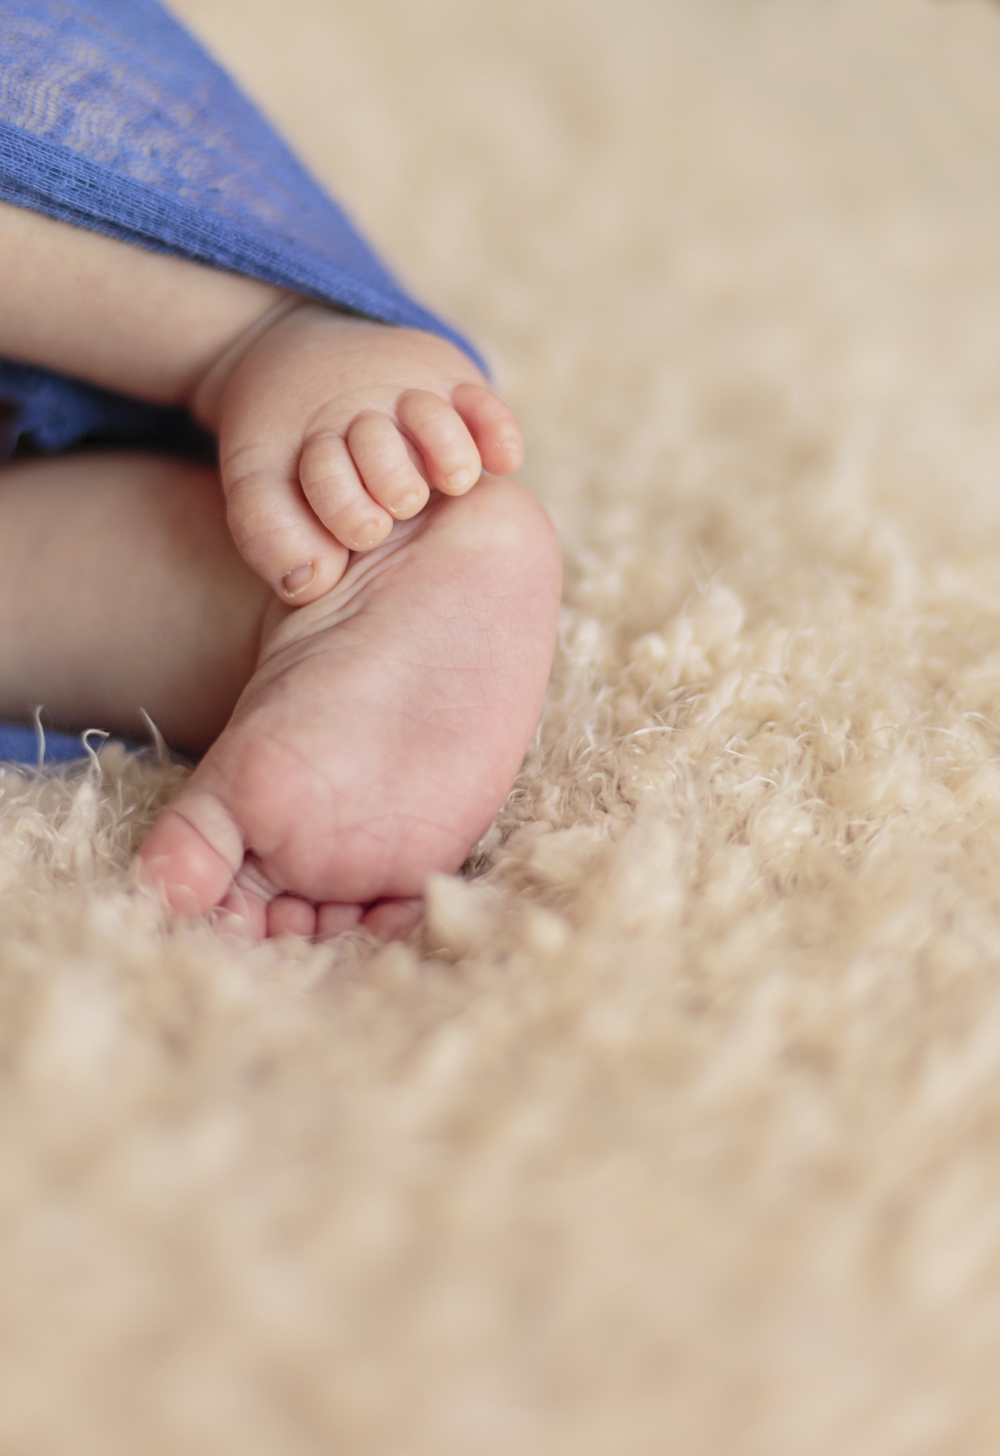 newborn photographer, Michigan, precious pixel photography, baby photo, toes, how to photograph